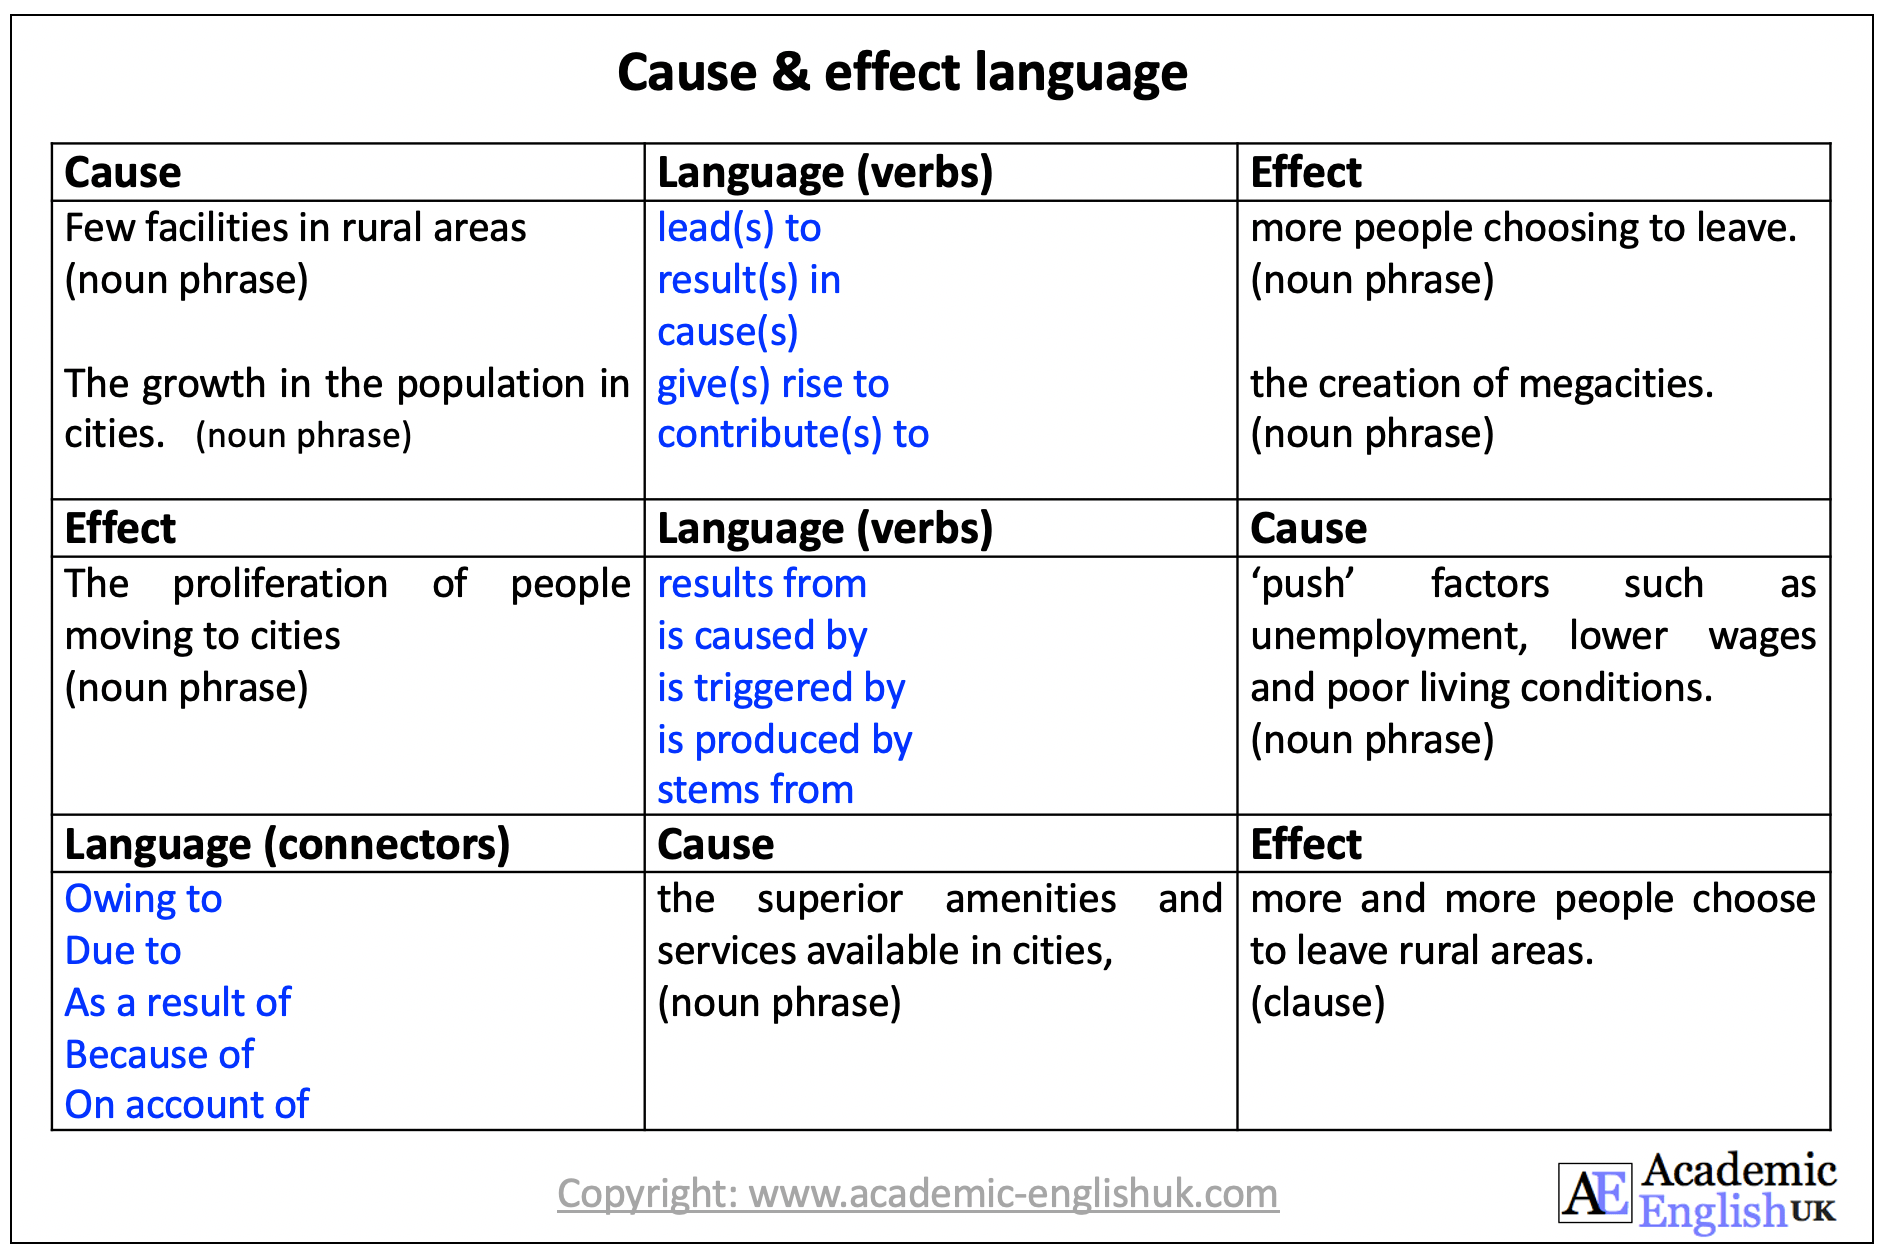 cause and effect language